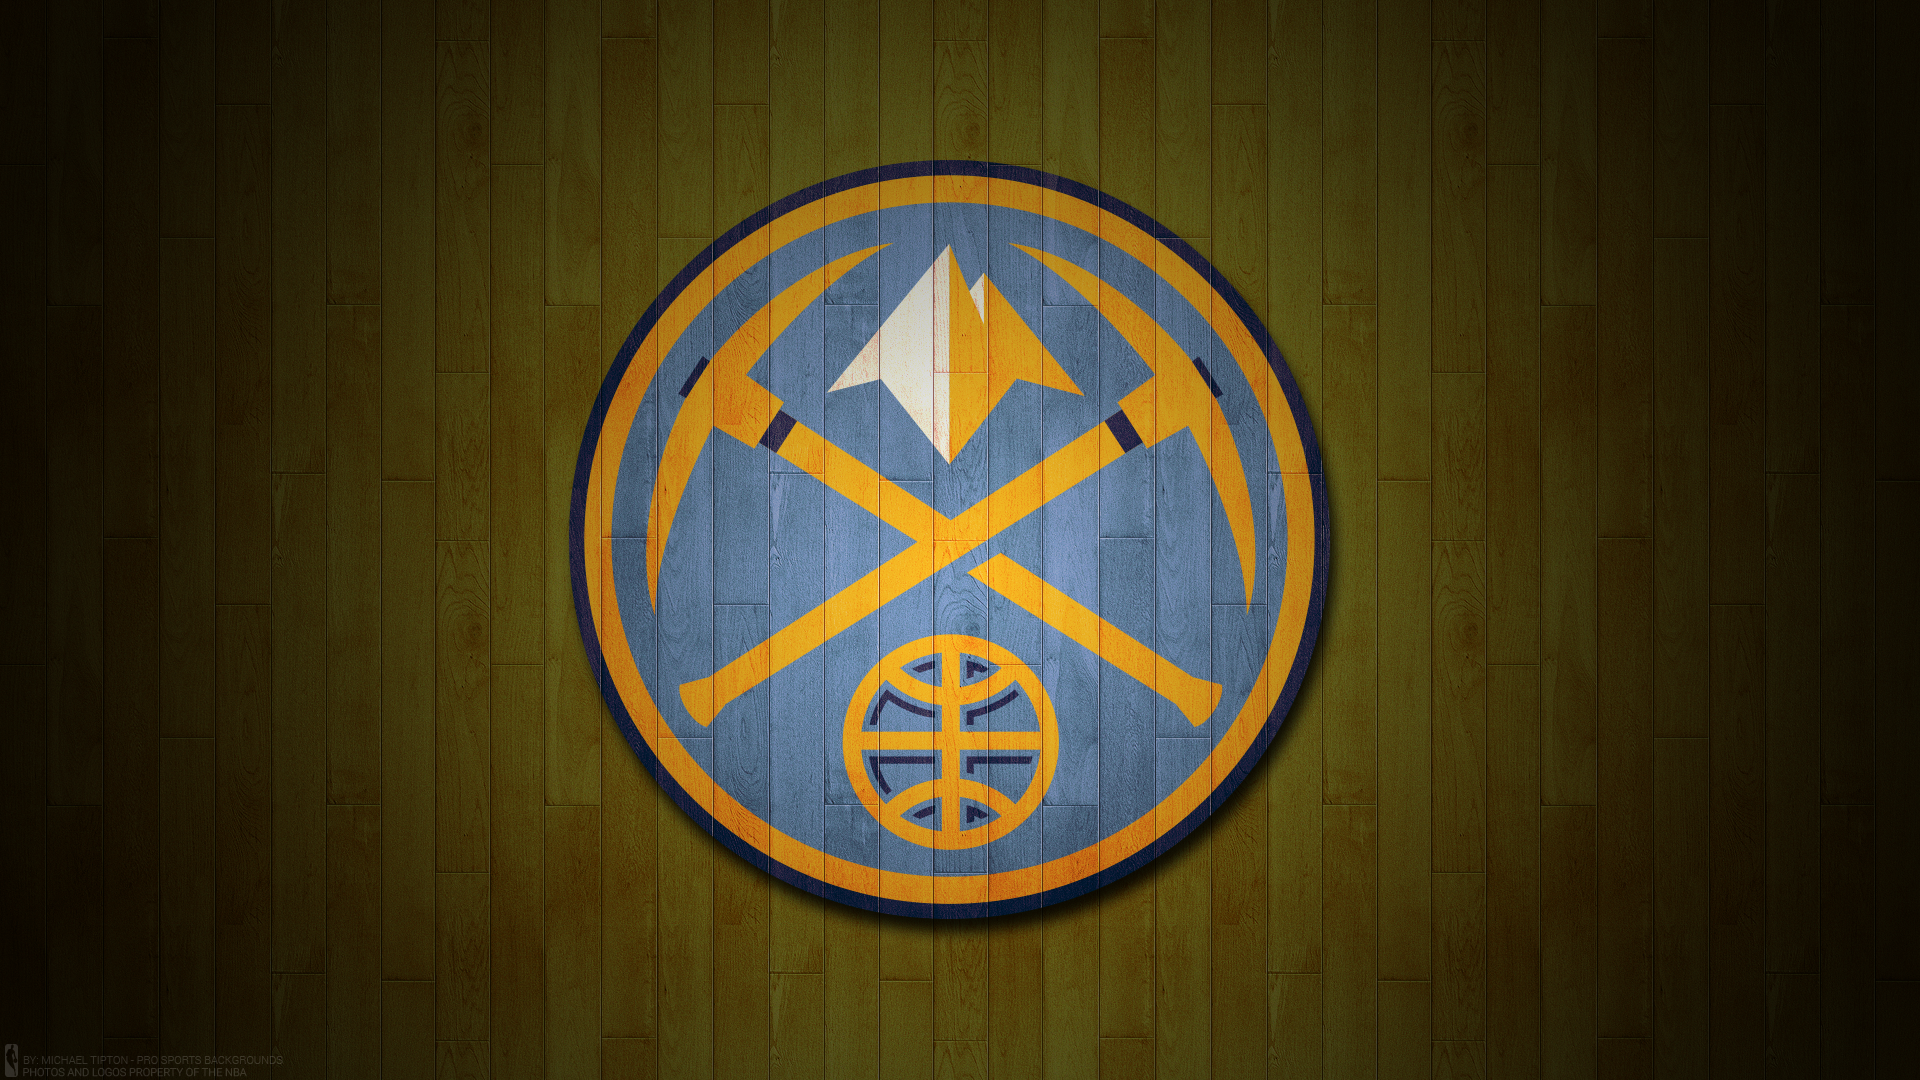 5047746 1920x1080 Basketball, Denver Nuggets, Logo, NBA wallpaper.